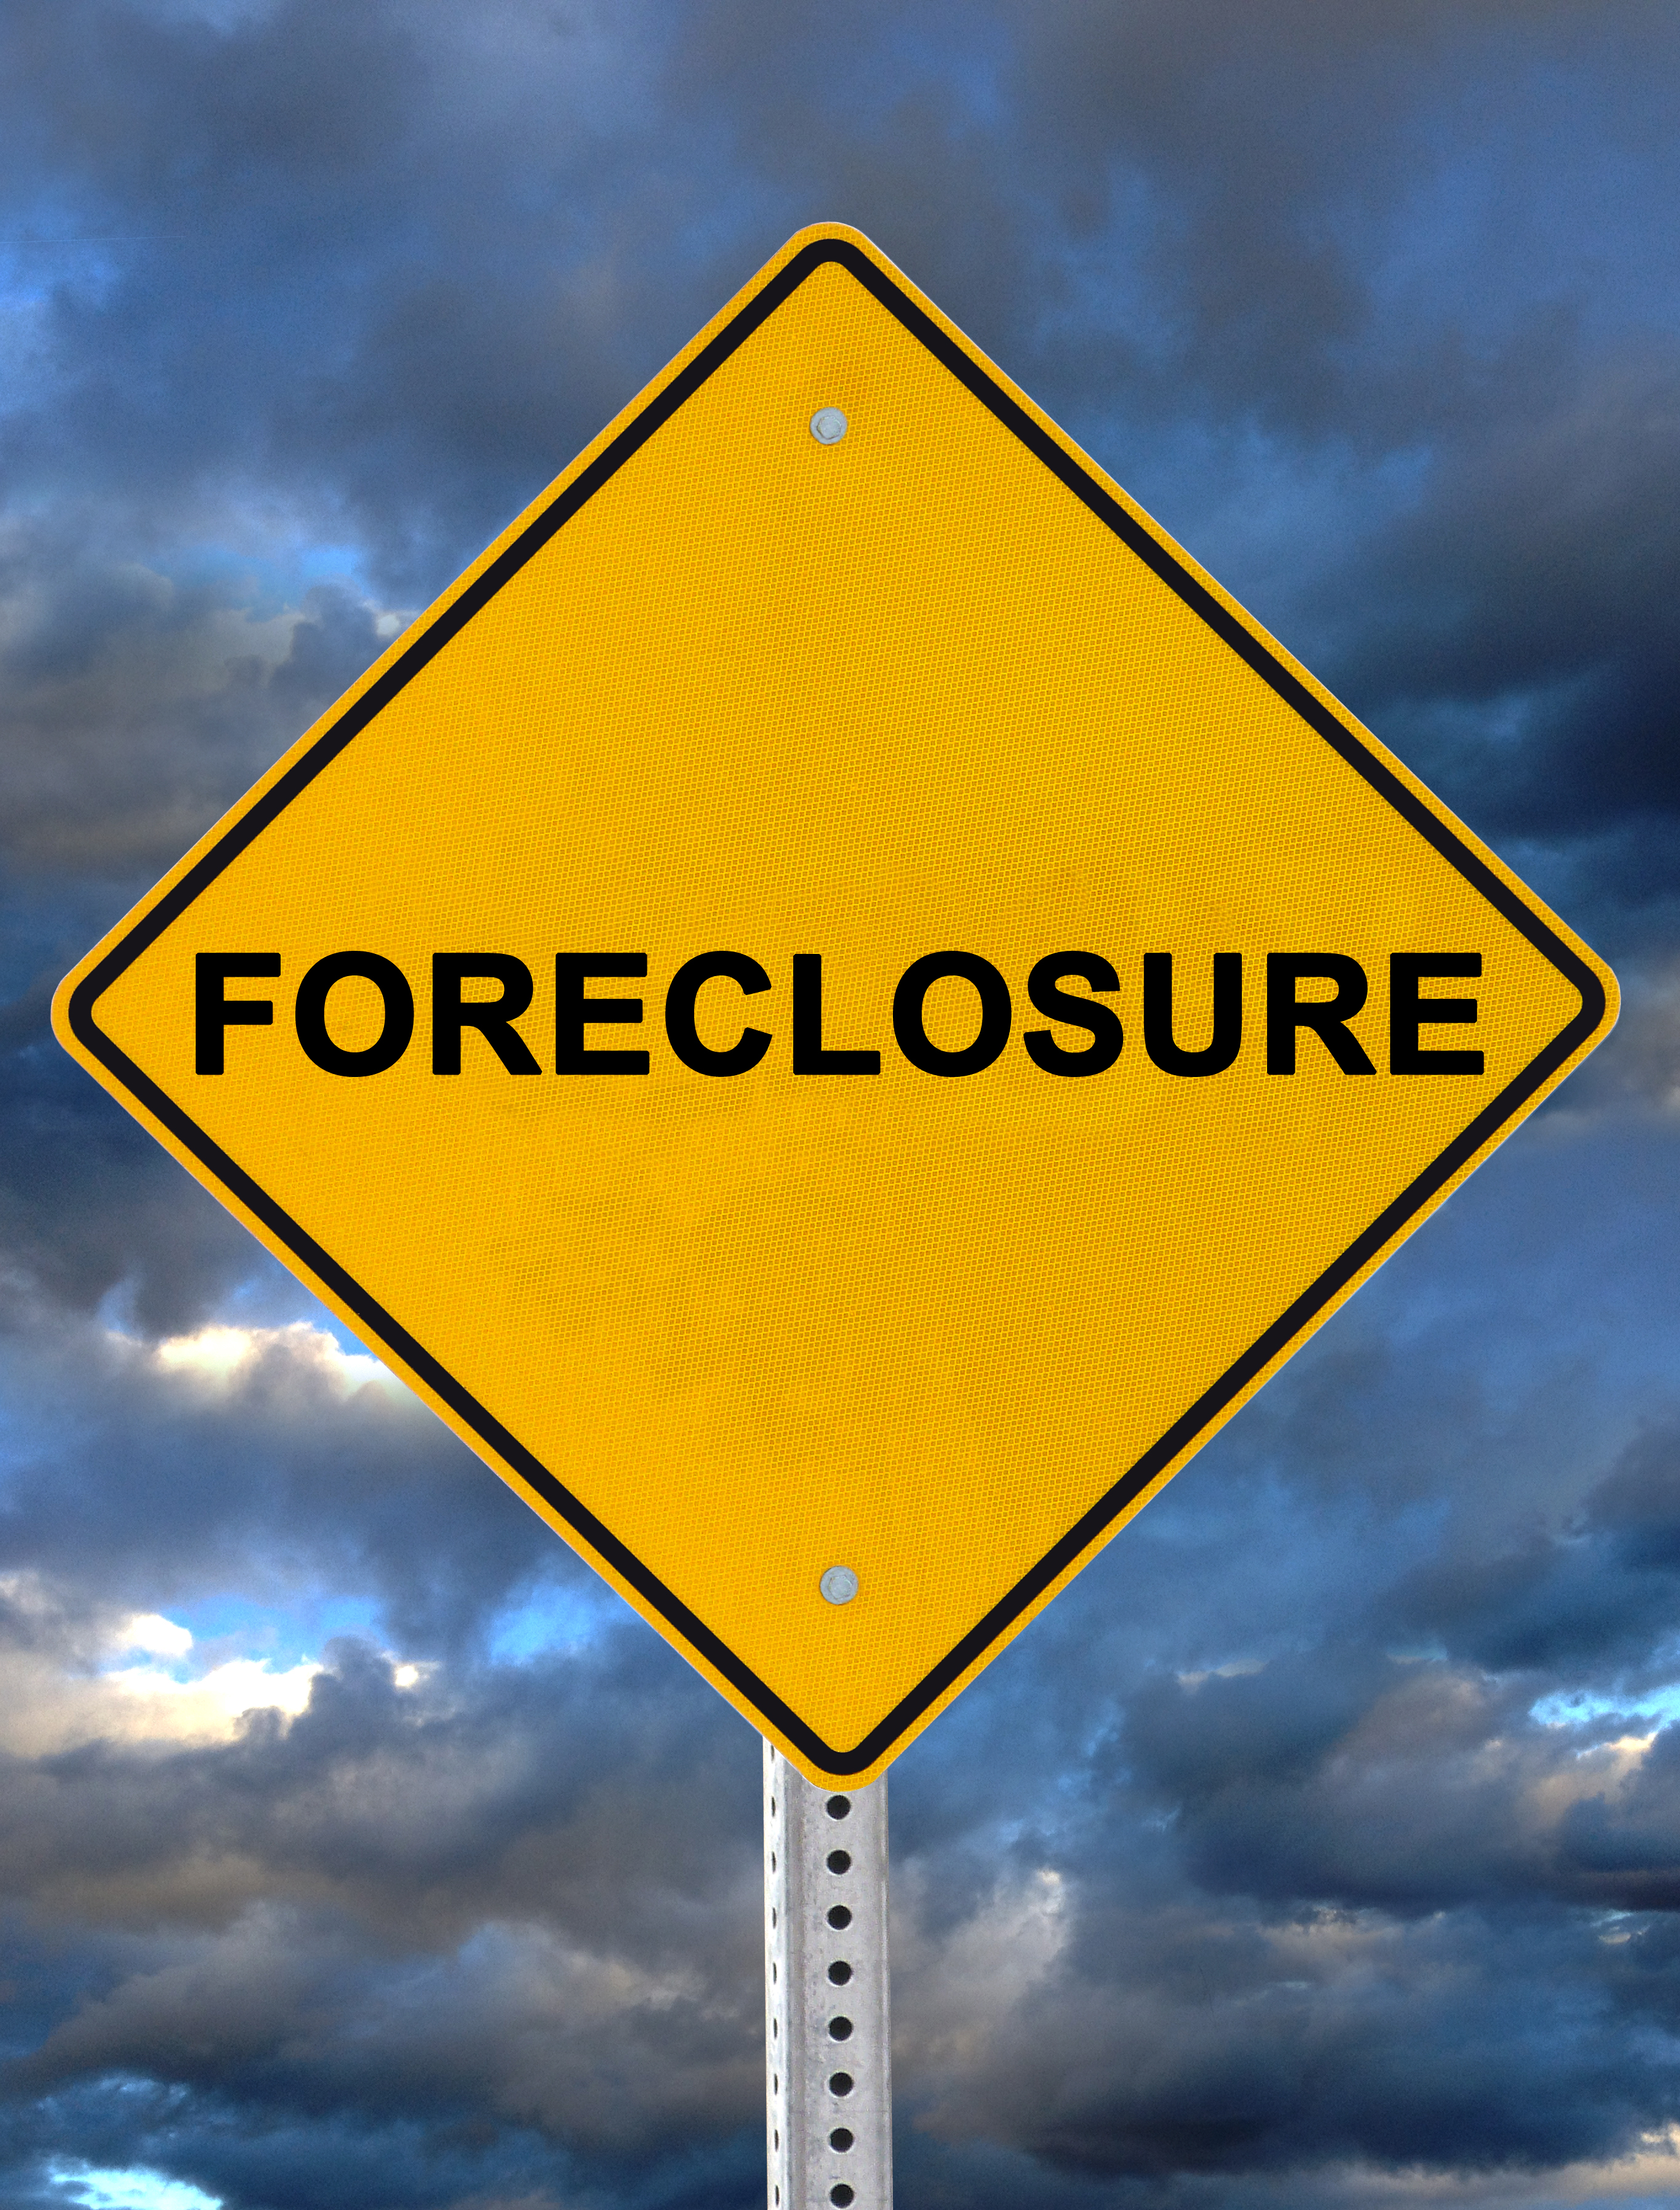 Florida Foreclosure Questions & Answers